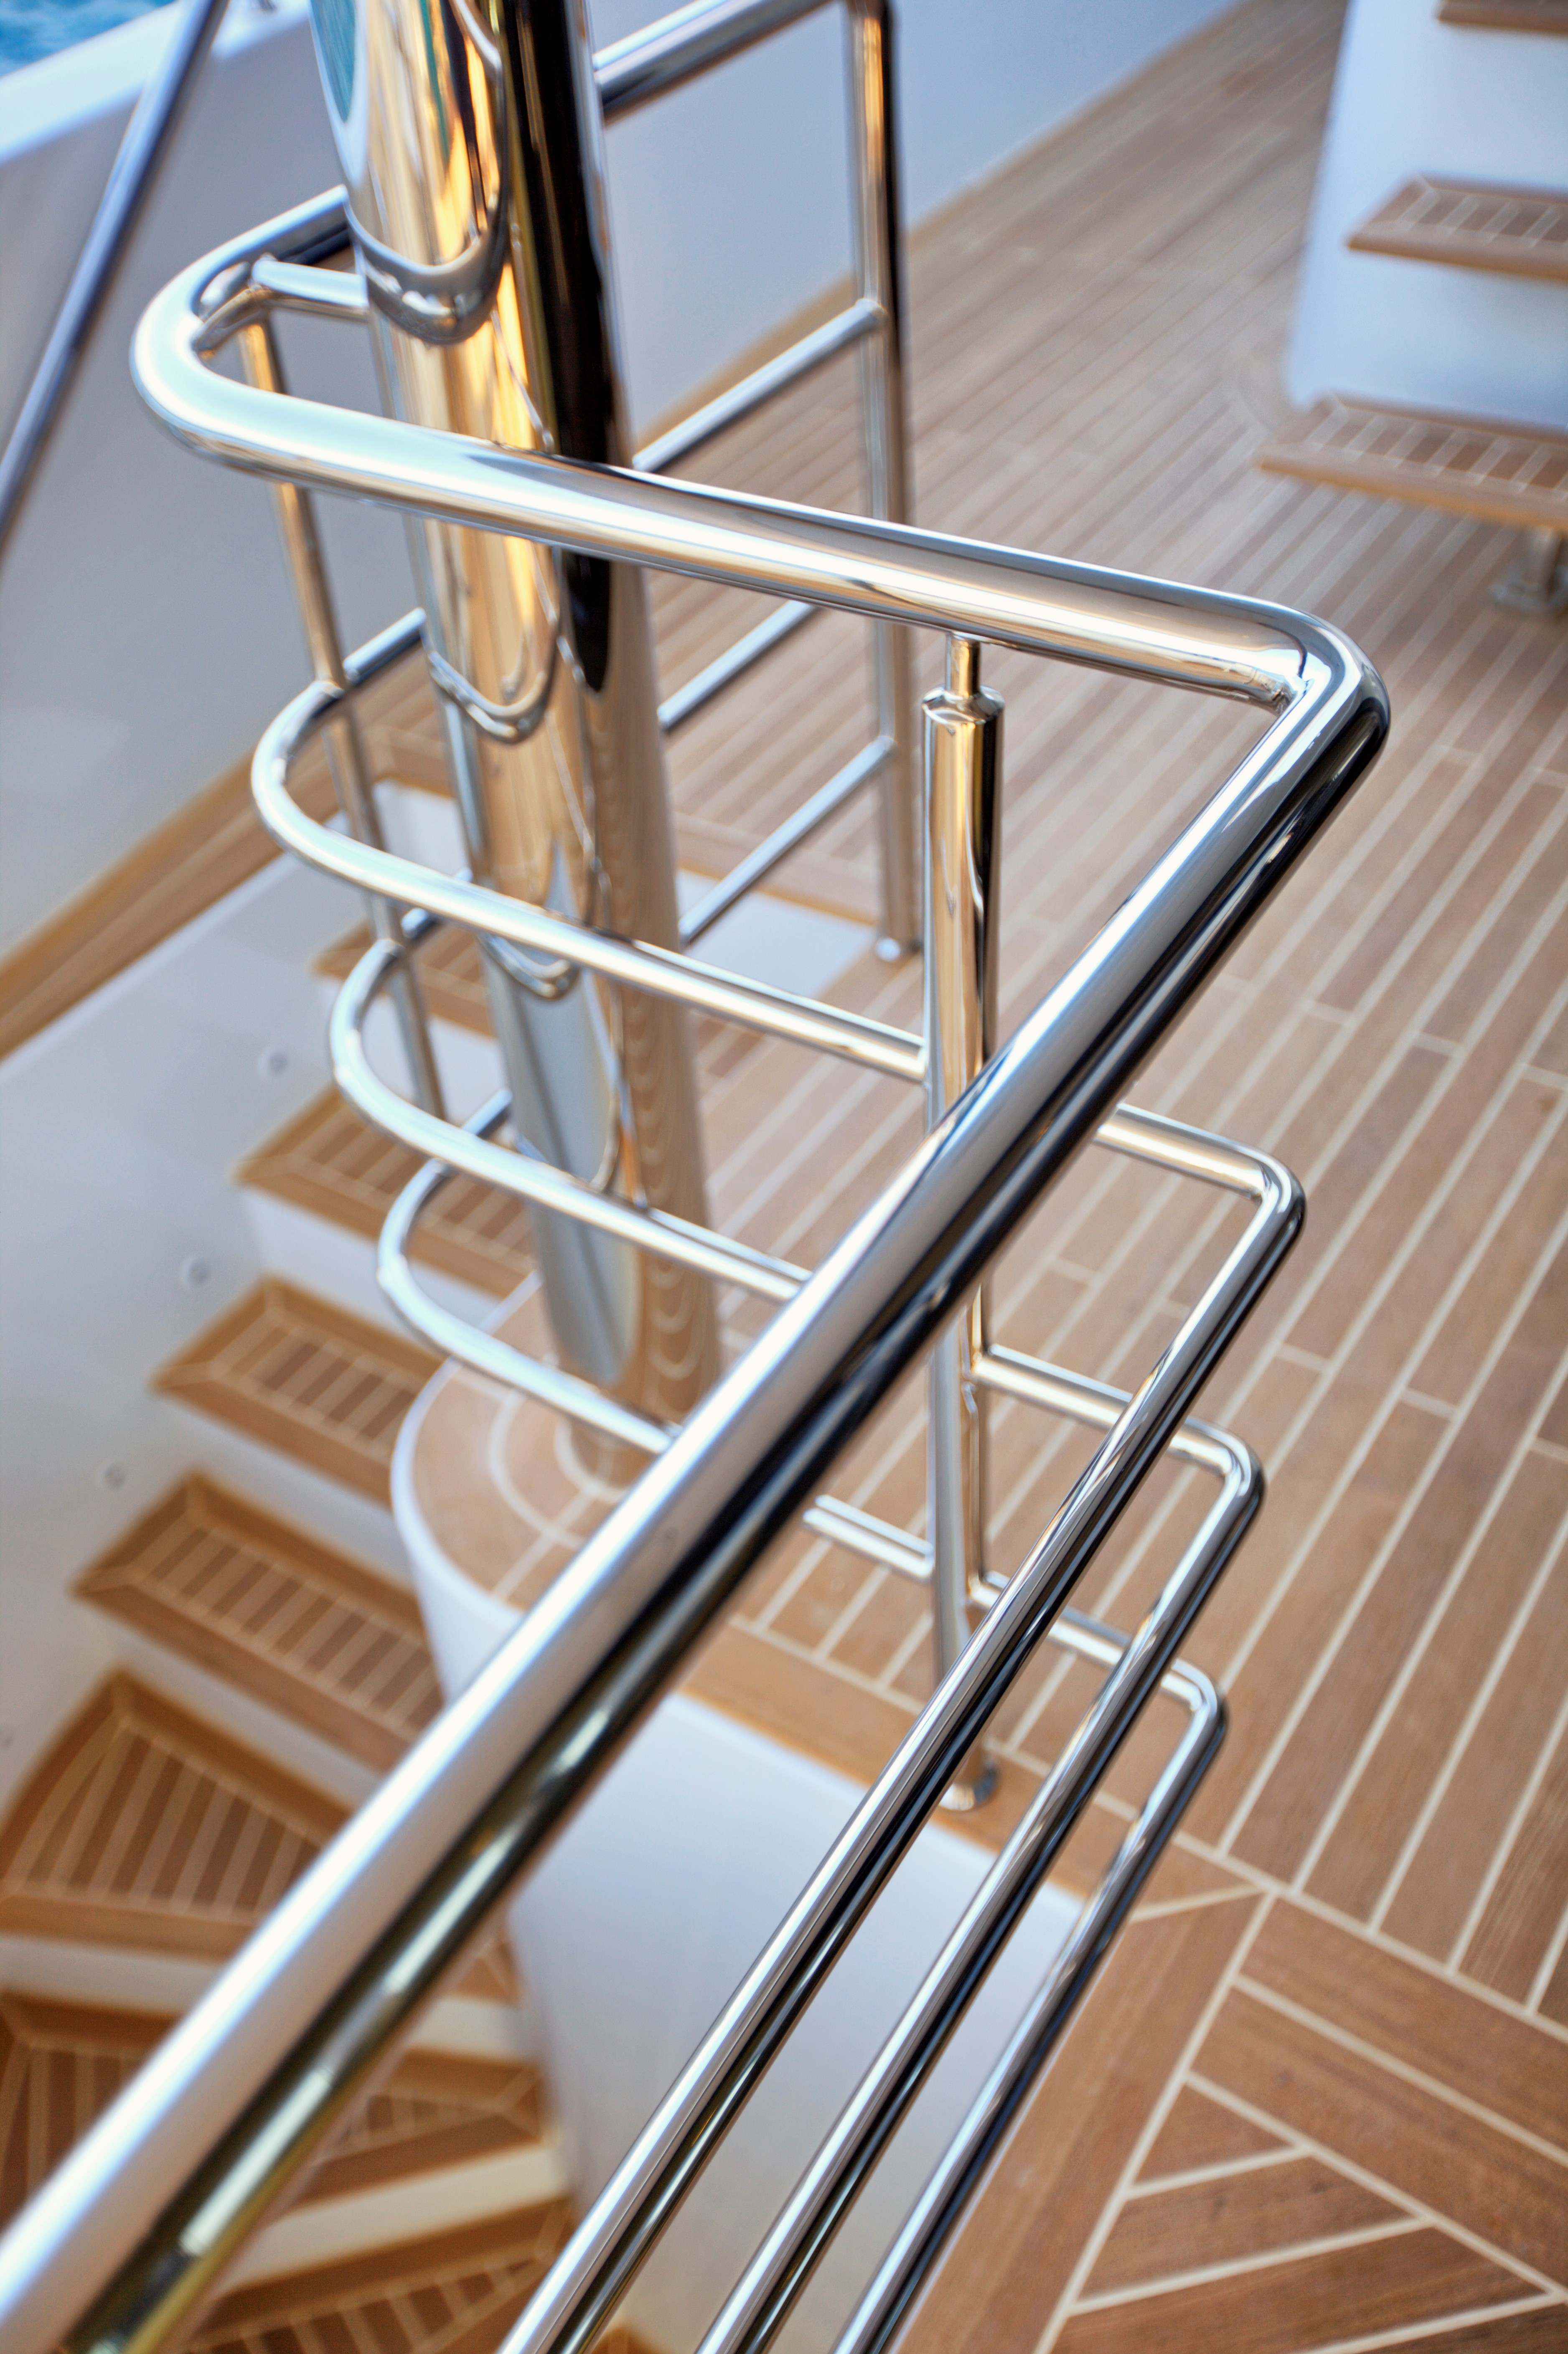 Saloon deck stairs